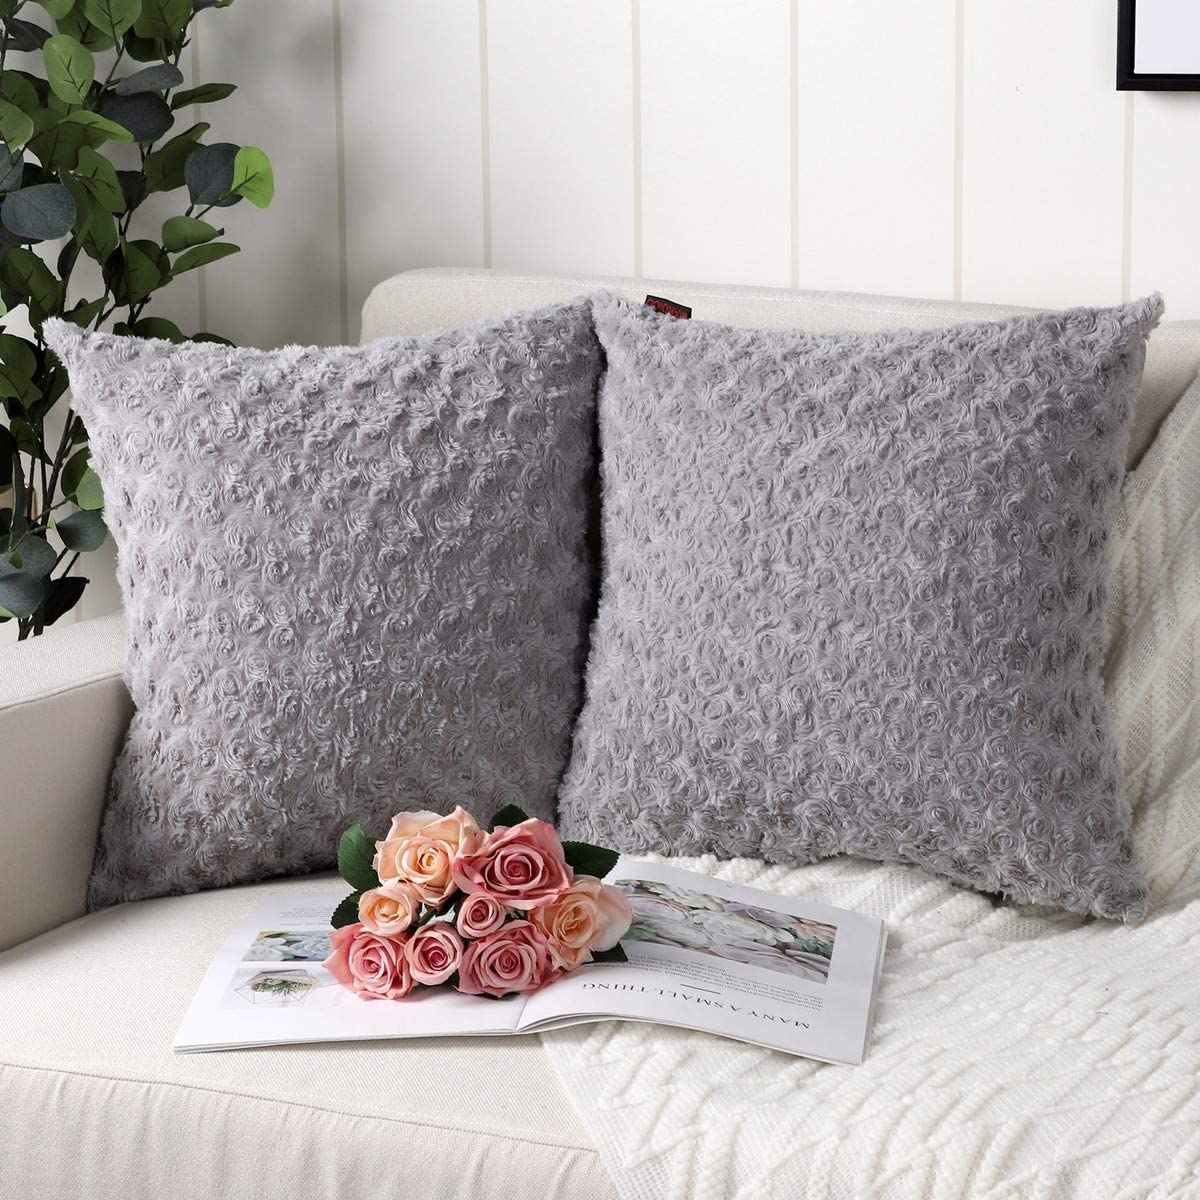 Mandioo Pack of 2 Grey Faux Fur 3D Flower Pattern Fuzzy Cozy Soft Decorative Throw Pillow Covers Set Cushion Cases Pillowcases for Couch Sofa Bedroom Car 24x24 Inches